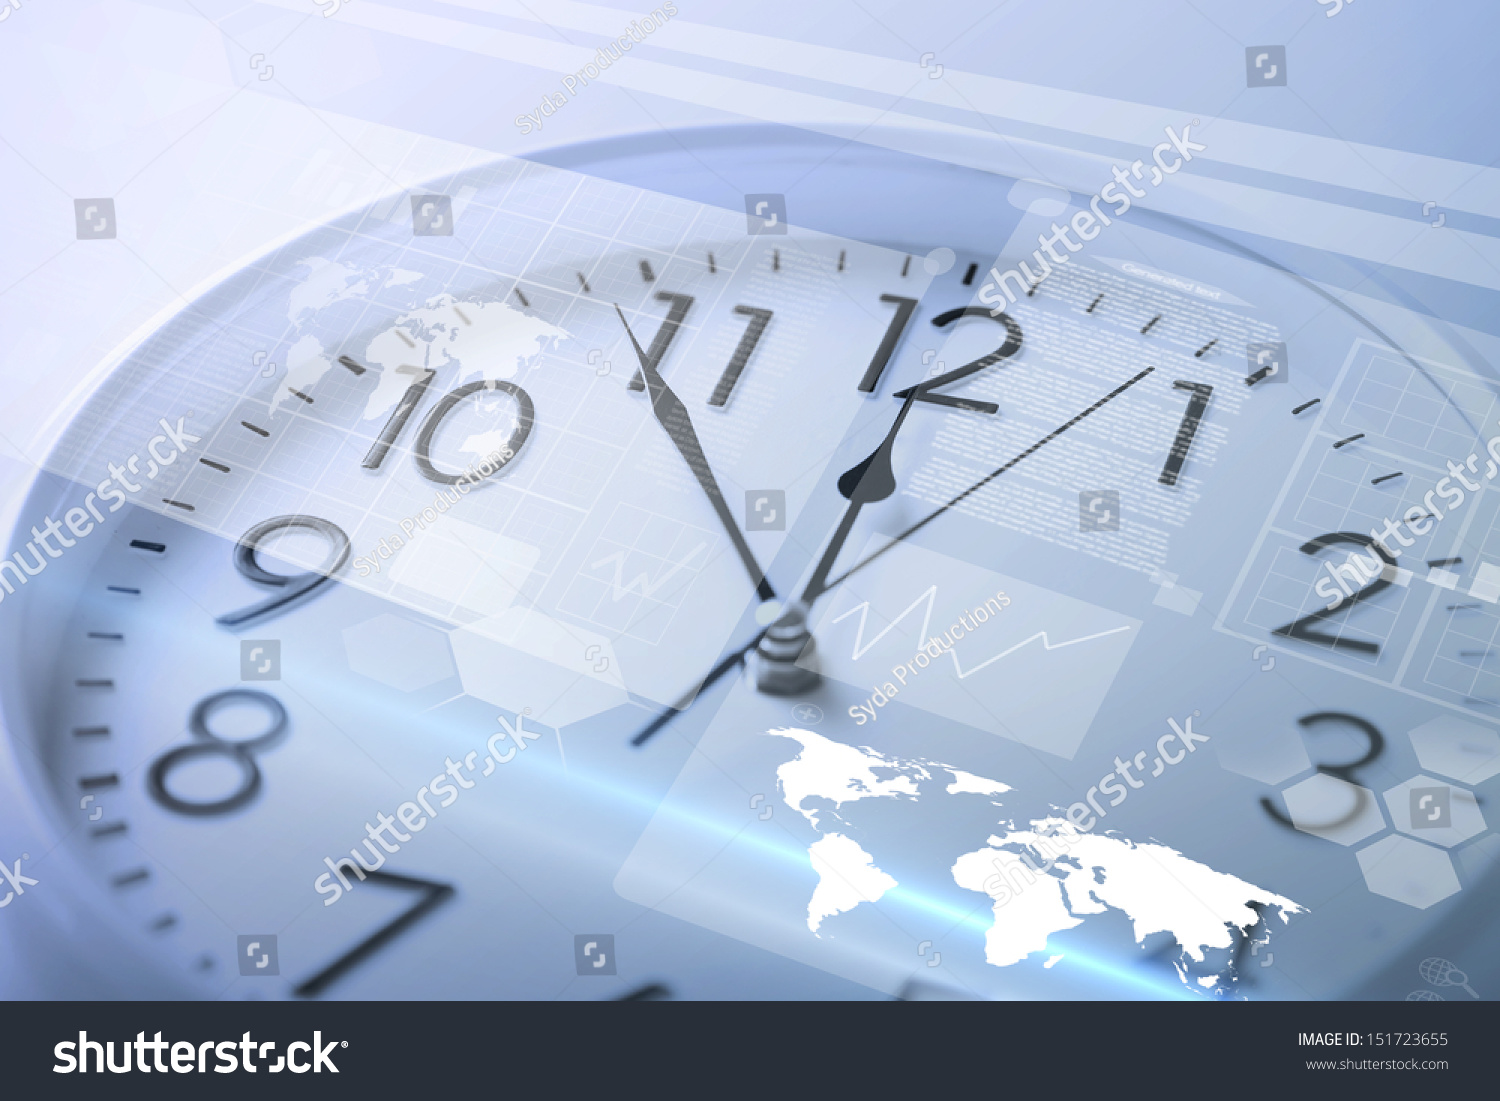 Time Management And Technology: Future Technology Time Management Concept Clock Stock